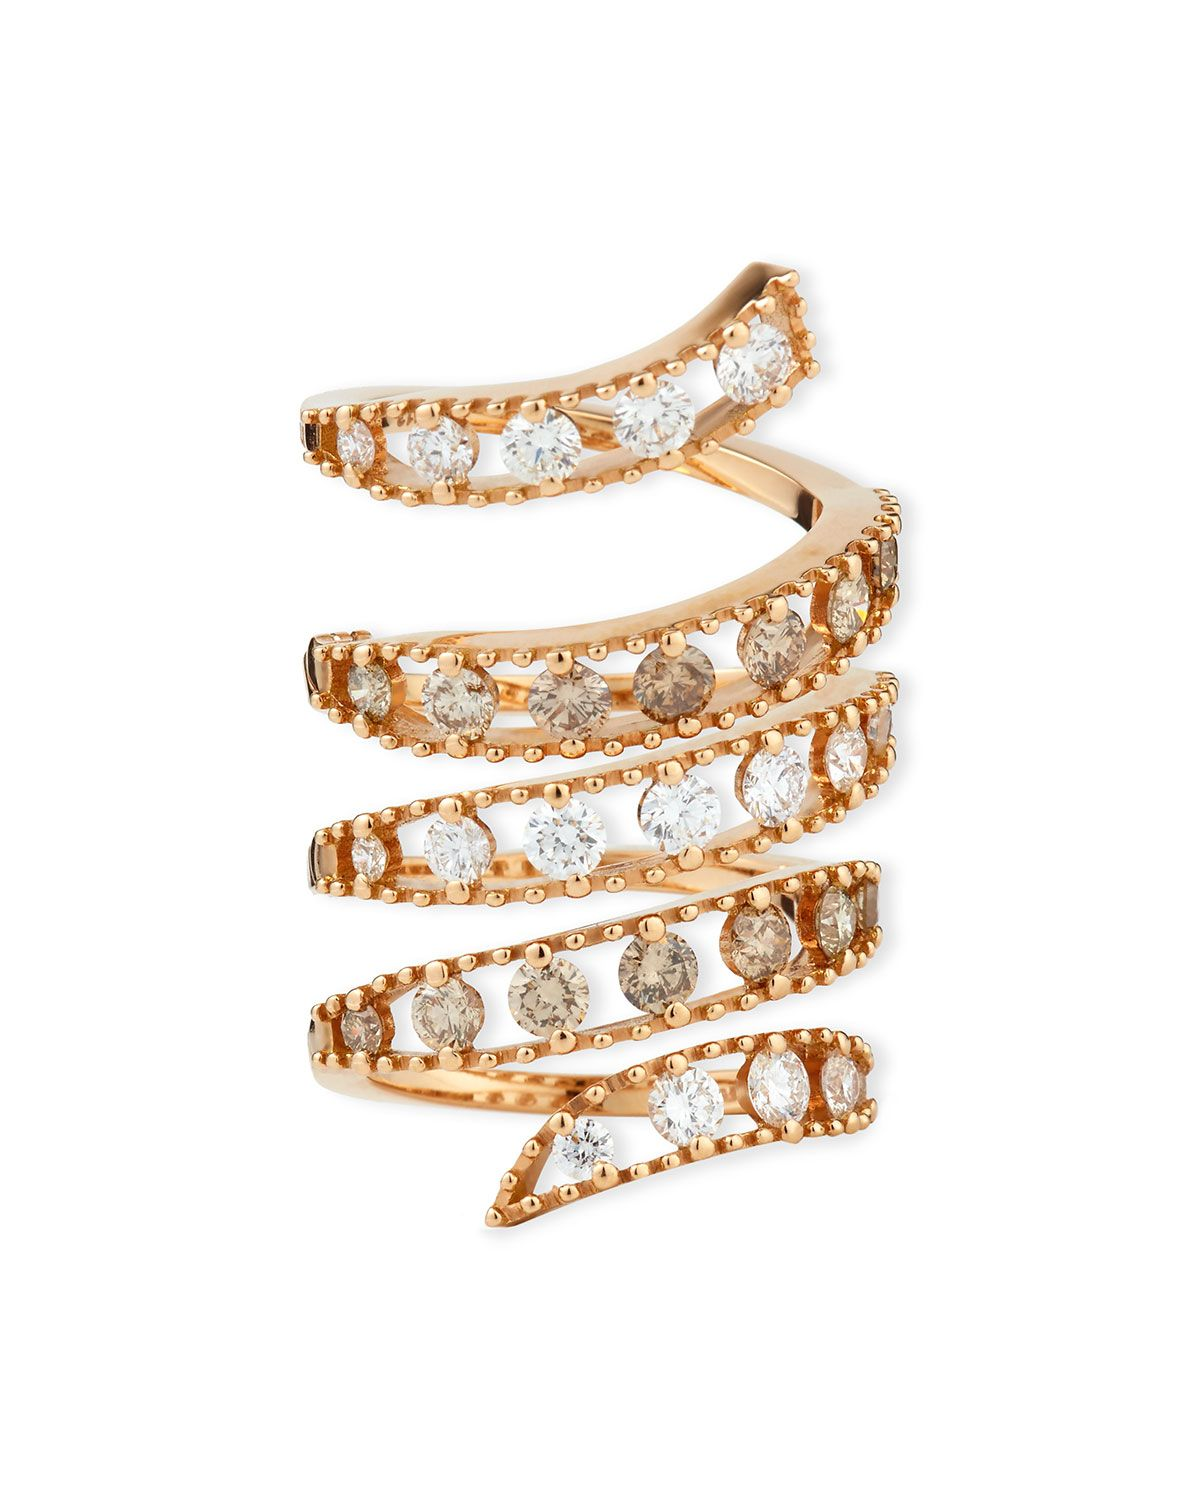 Staurino Fratelli Magic Snake 18K Rose Gold Flex Ring with Diamonds